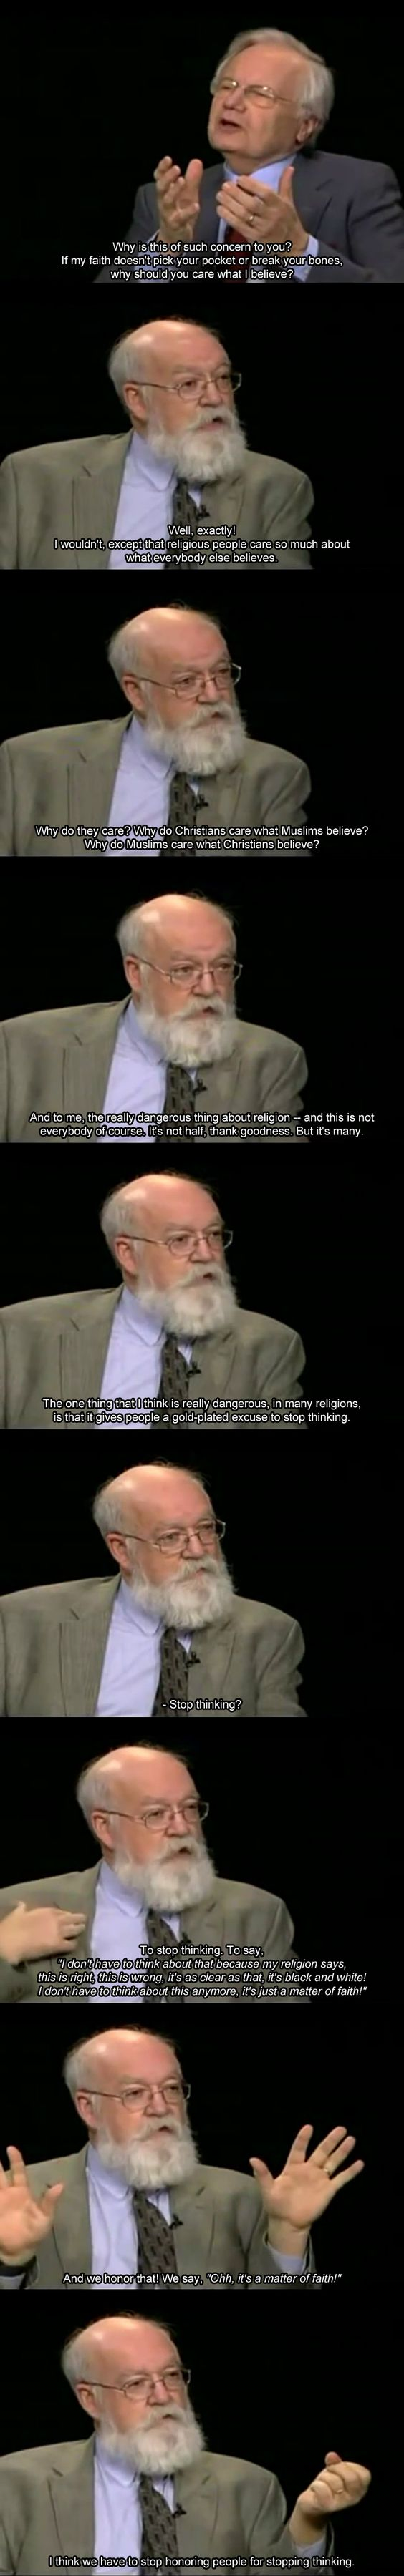 One of the most constructive, civil, informative discussions on religion IMHO. Dan Dennett interviewed by Bill Moyers: https://www.youtube.com/watch?v=EUeQXmYVamA&feature=youtu.be